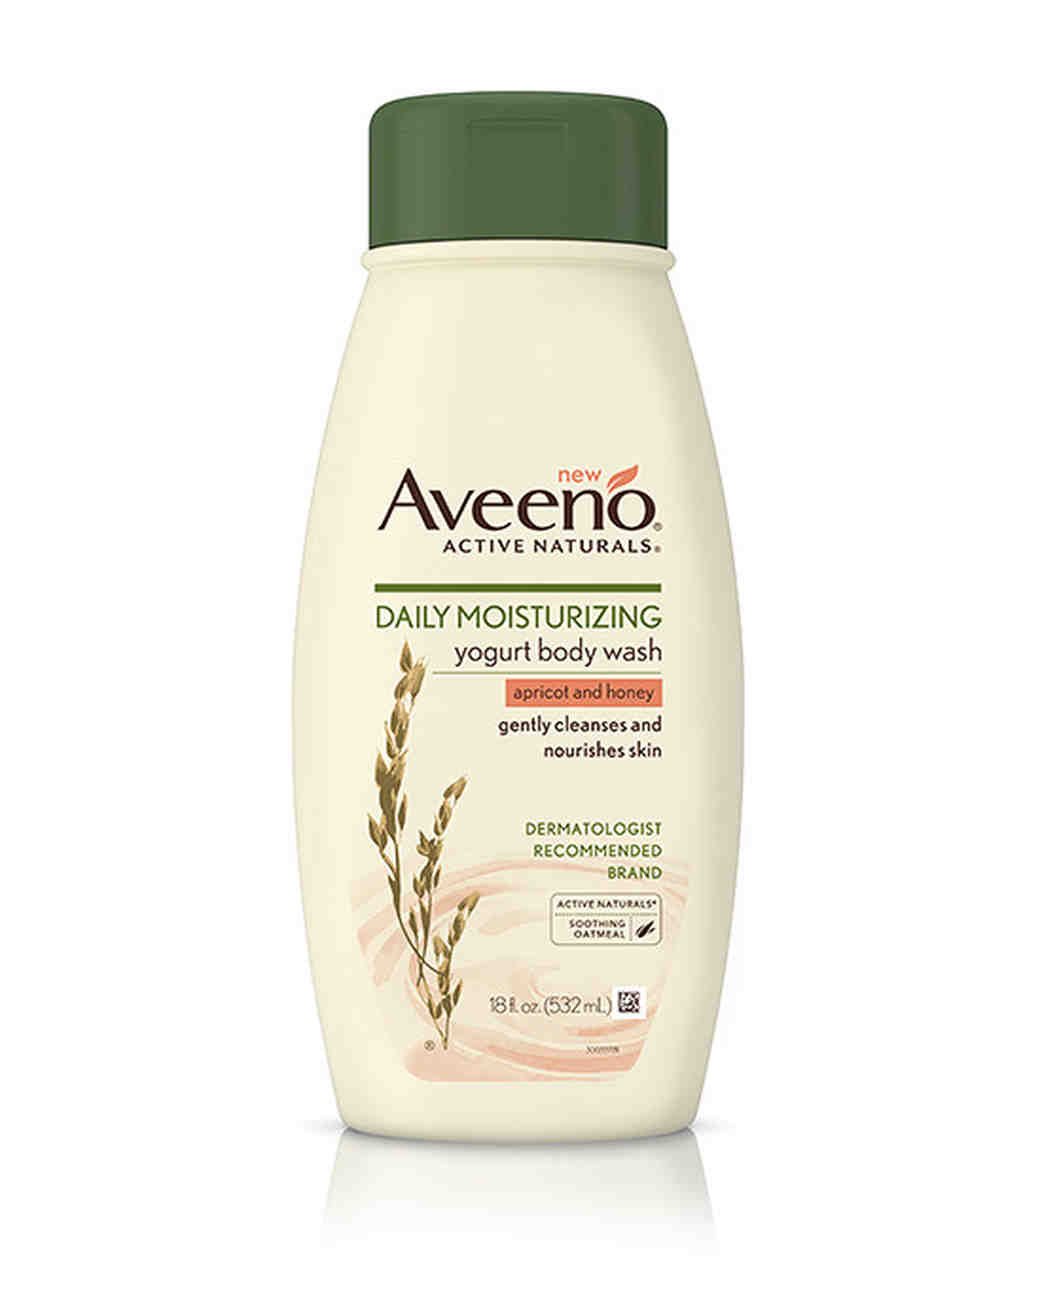 aveeno daily moisturizing yogurt